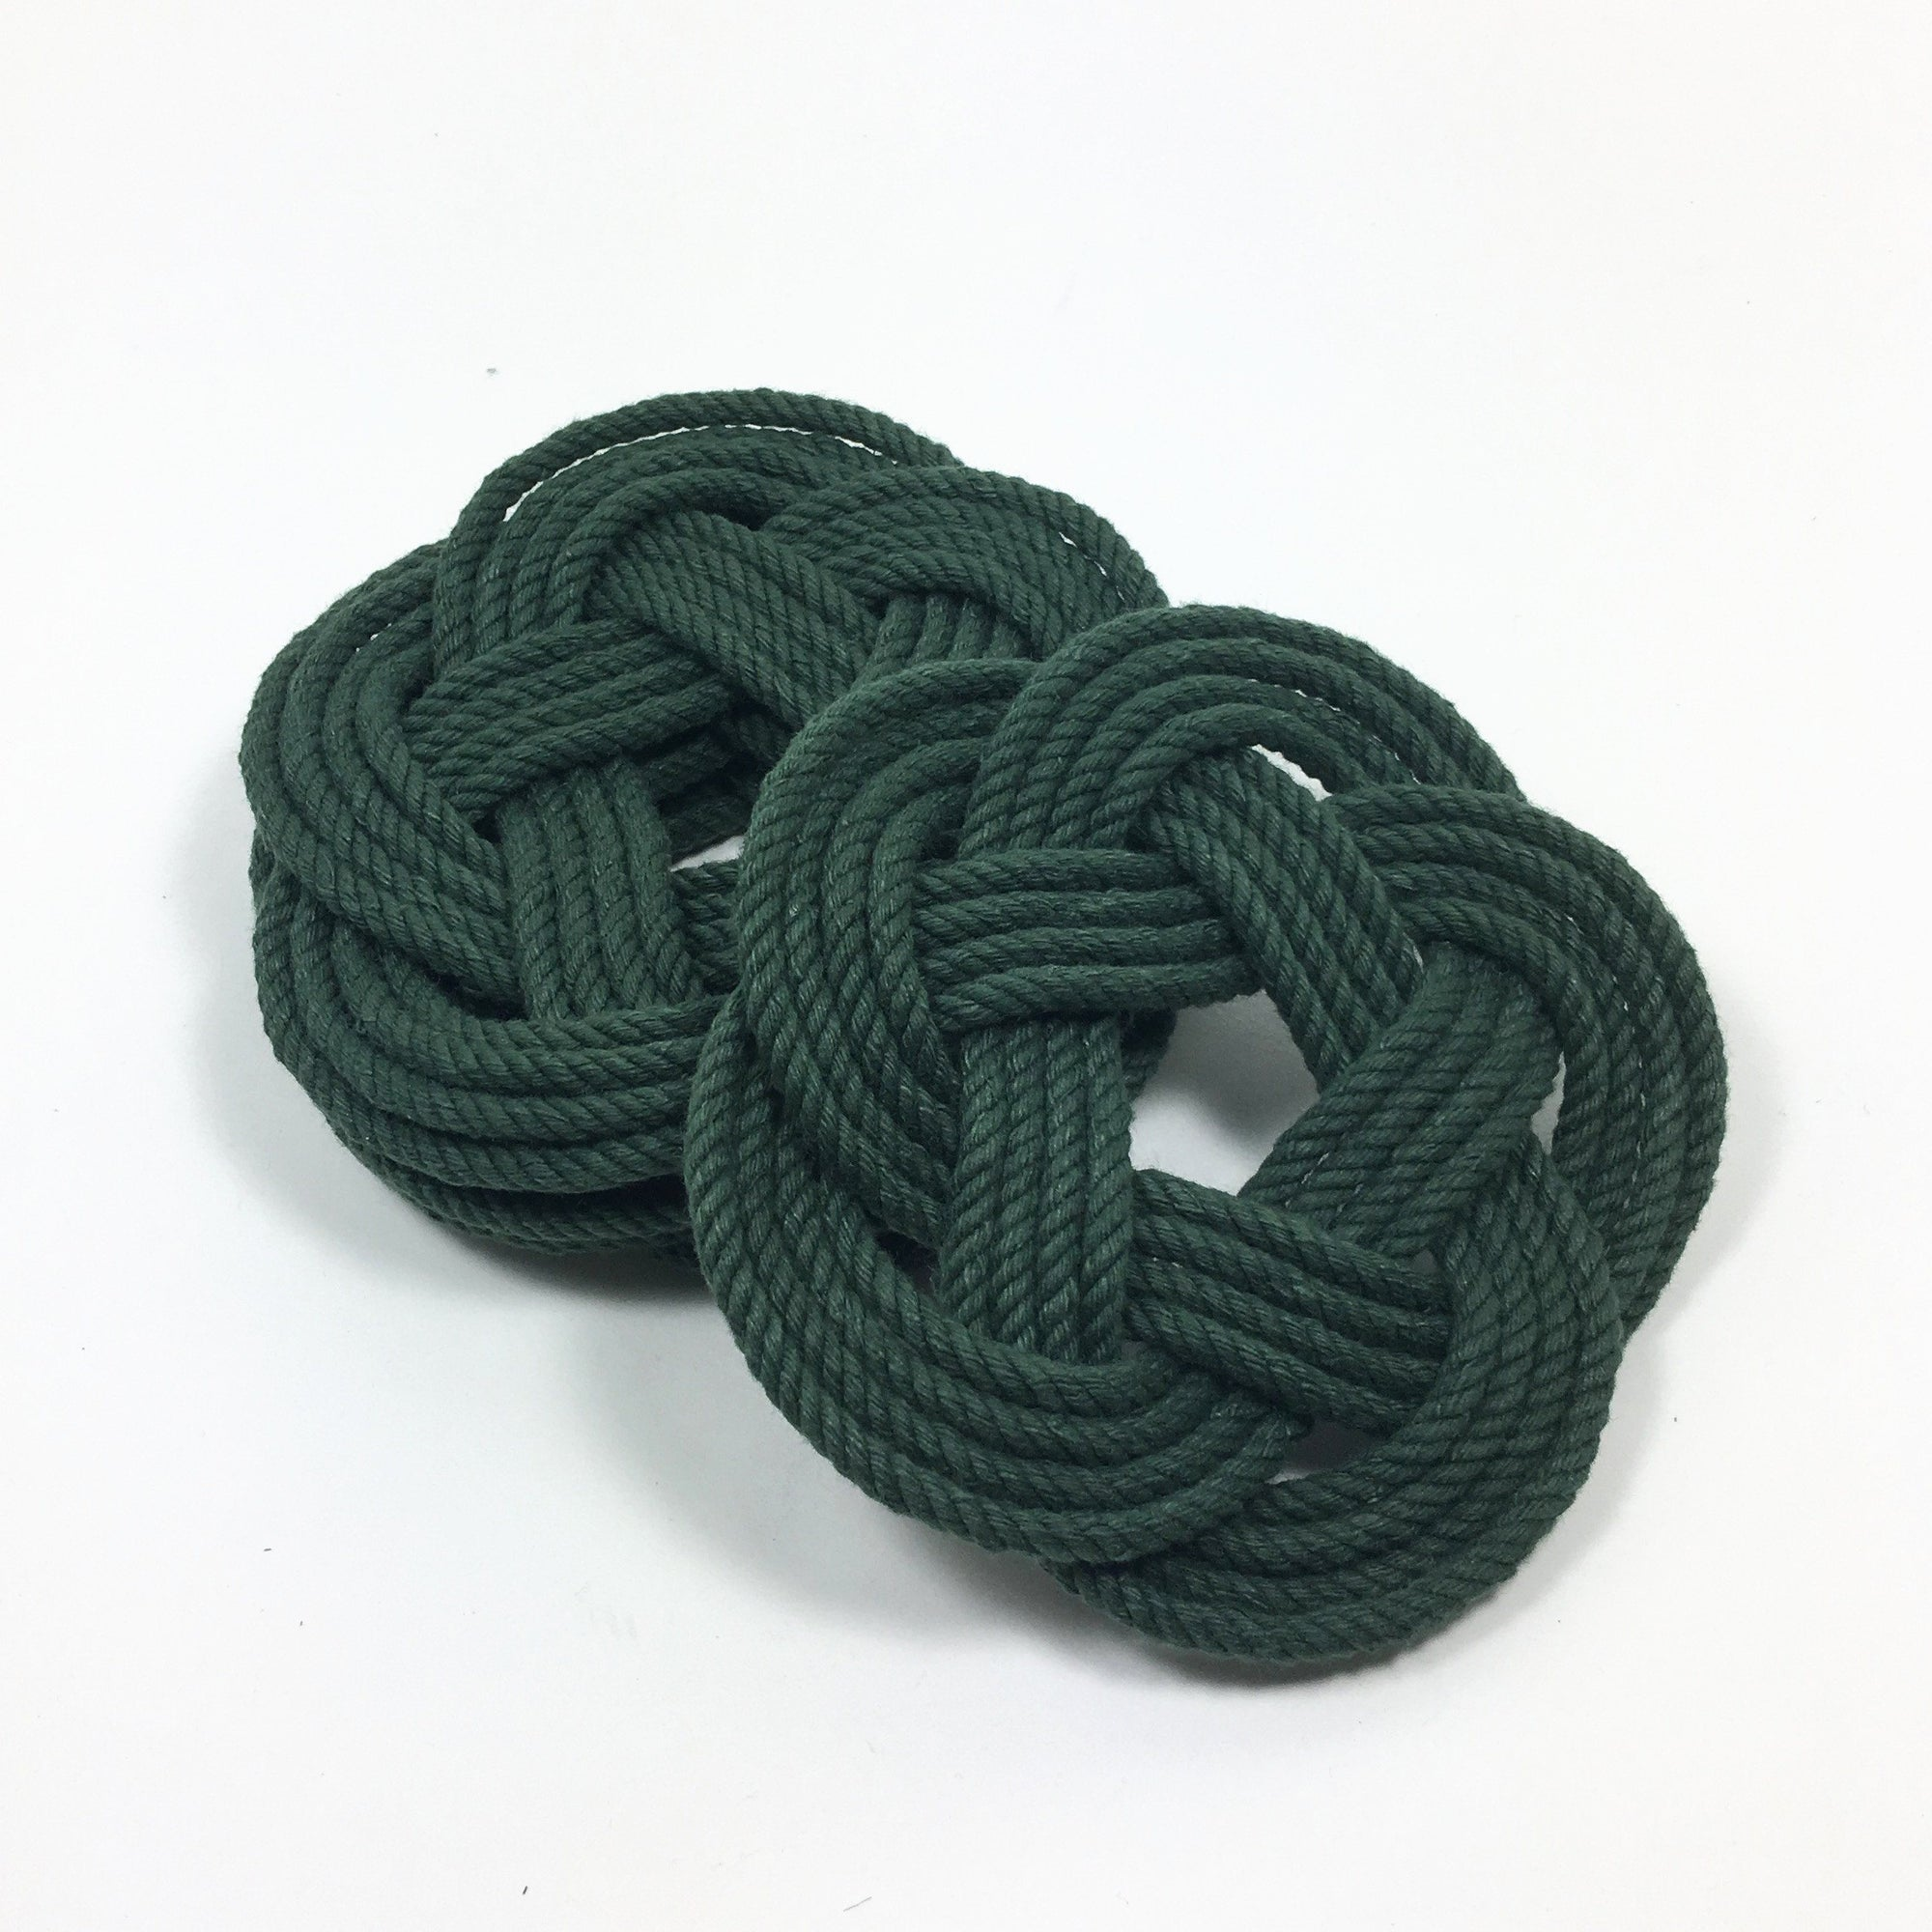 Nautical Knot Sailor Knot Coasters, Forest Green , Set of 4 handmade at Mystic Knotwork